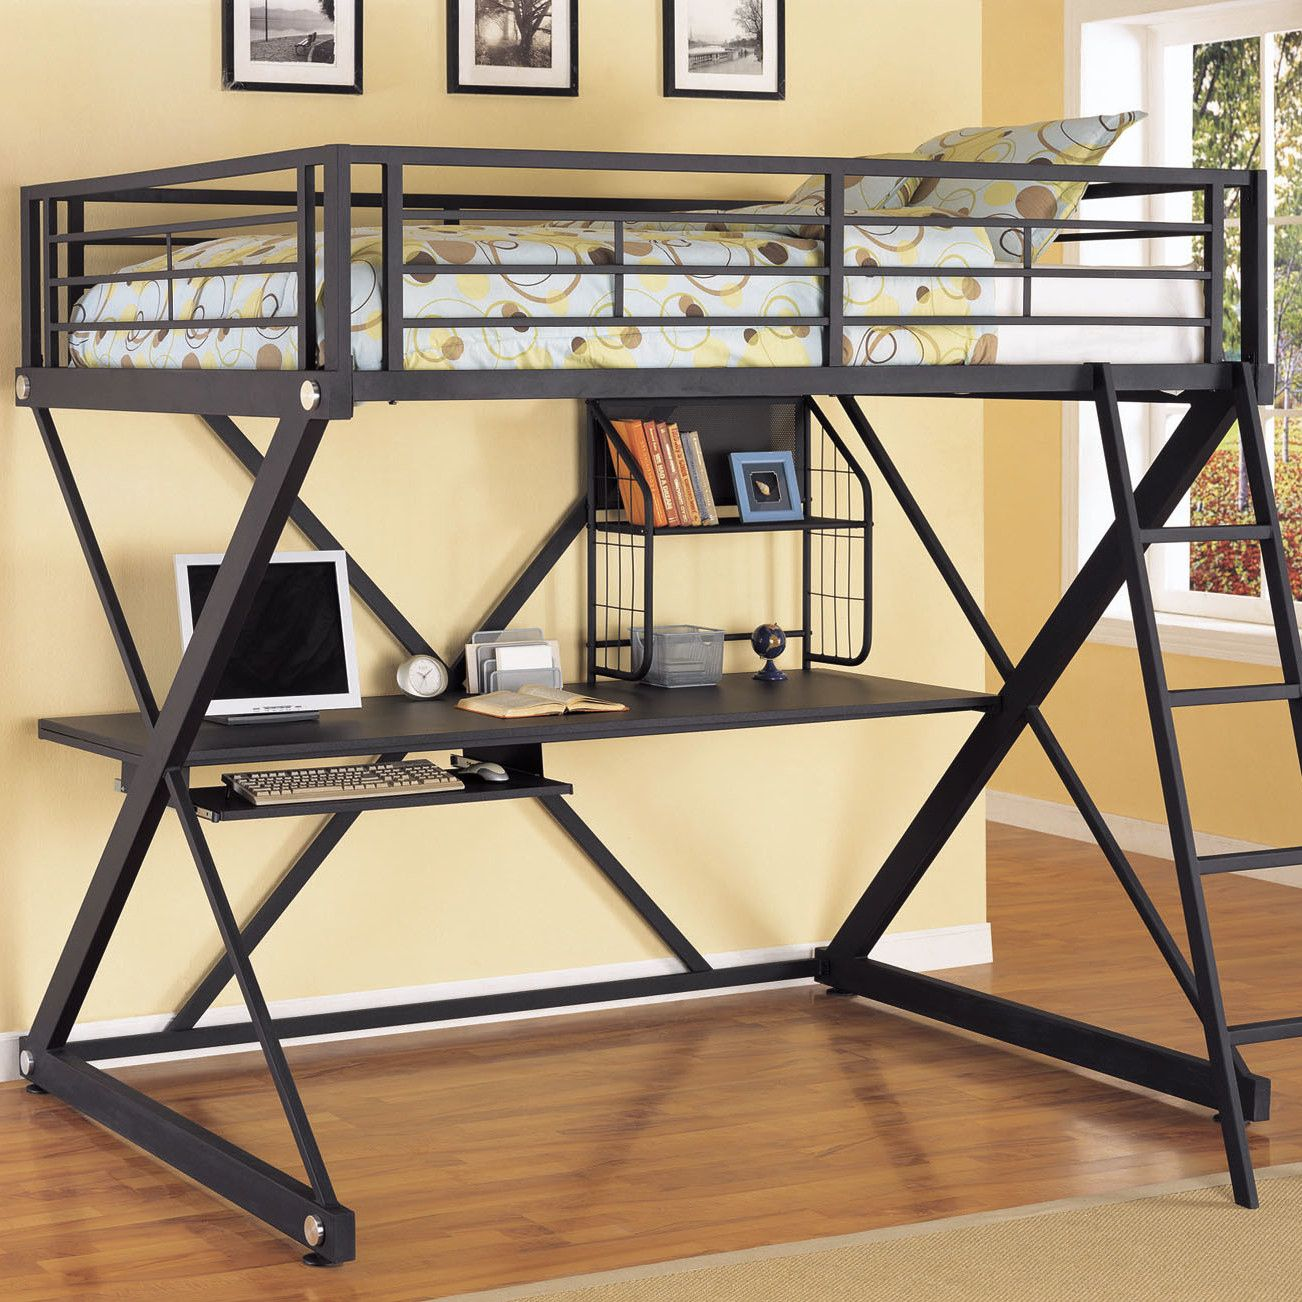 Loft bed with desk full size mattress  Loft Beds with Desk for Adults  Rustic Living Room Furniture Sets